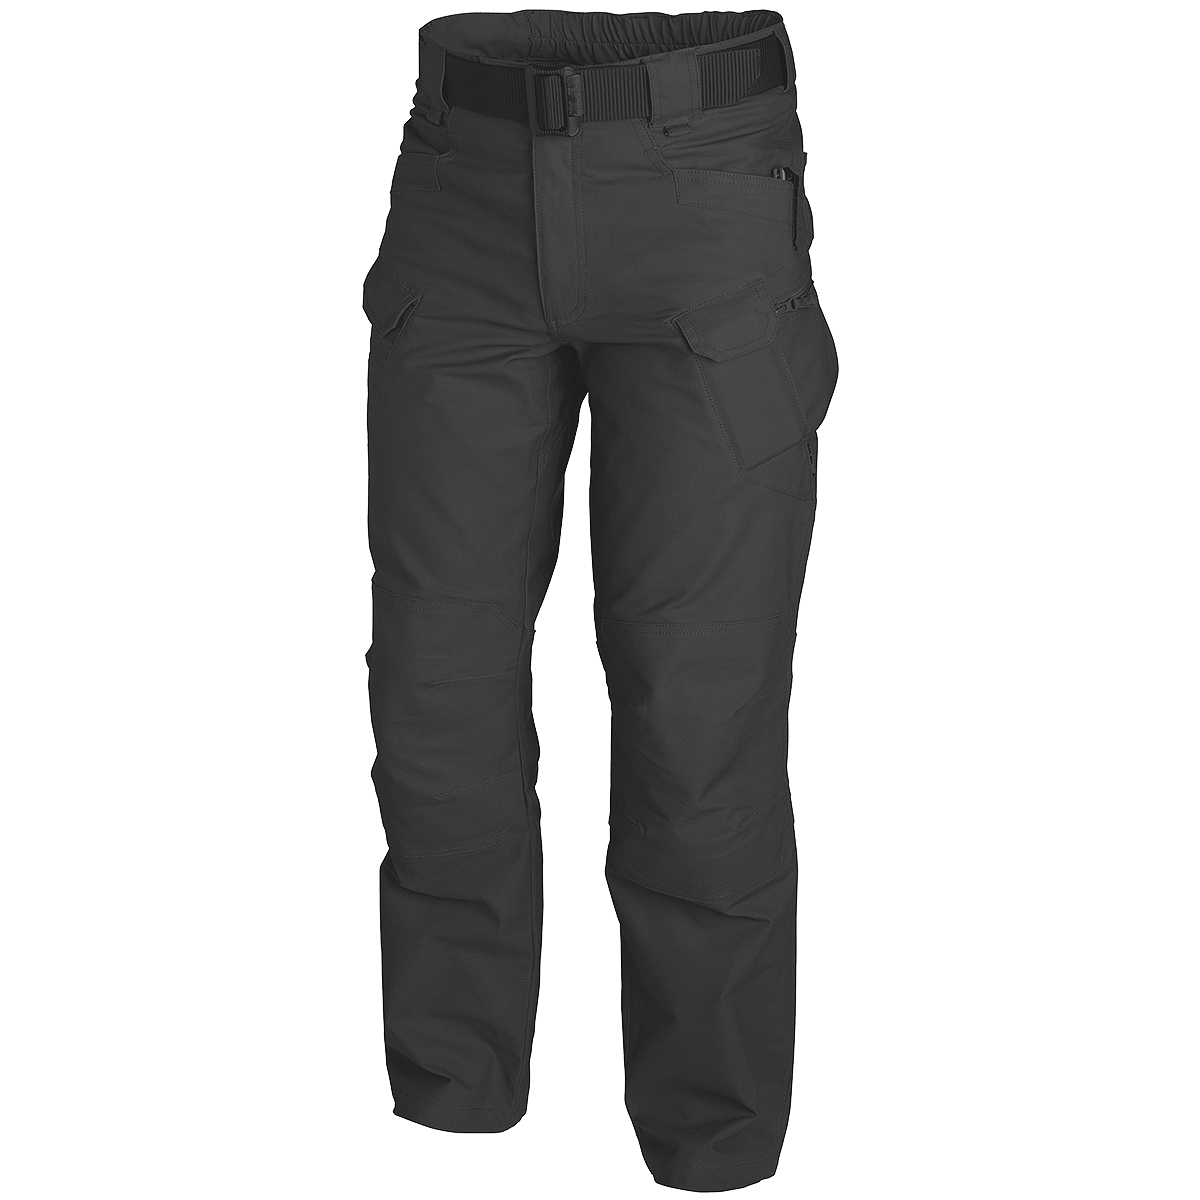 2a9dbbd8b5abbe Details about HELIKON UTP TACTICAL MENS CARGO TROUSERS COMBAT PANTS  SECURITY ARMY POLICE BLACK